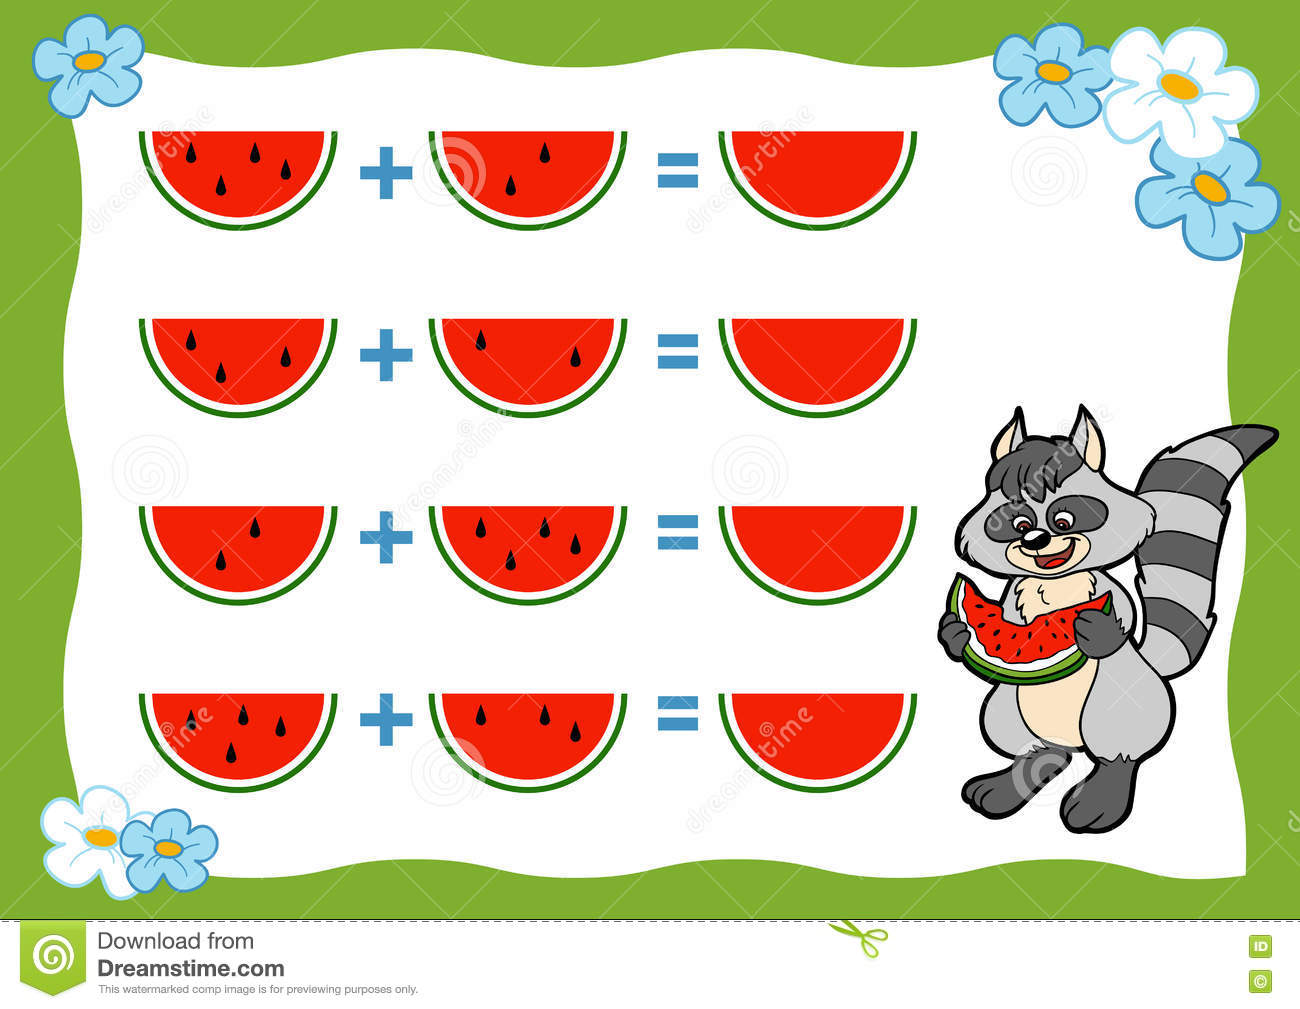 Counting Game For Preschool Children Addition Worksheets